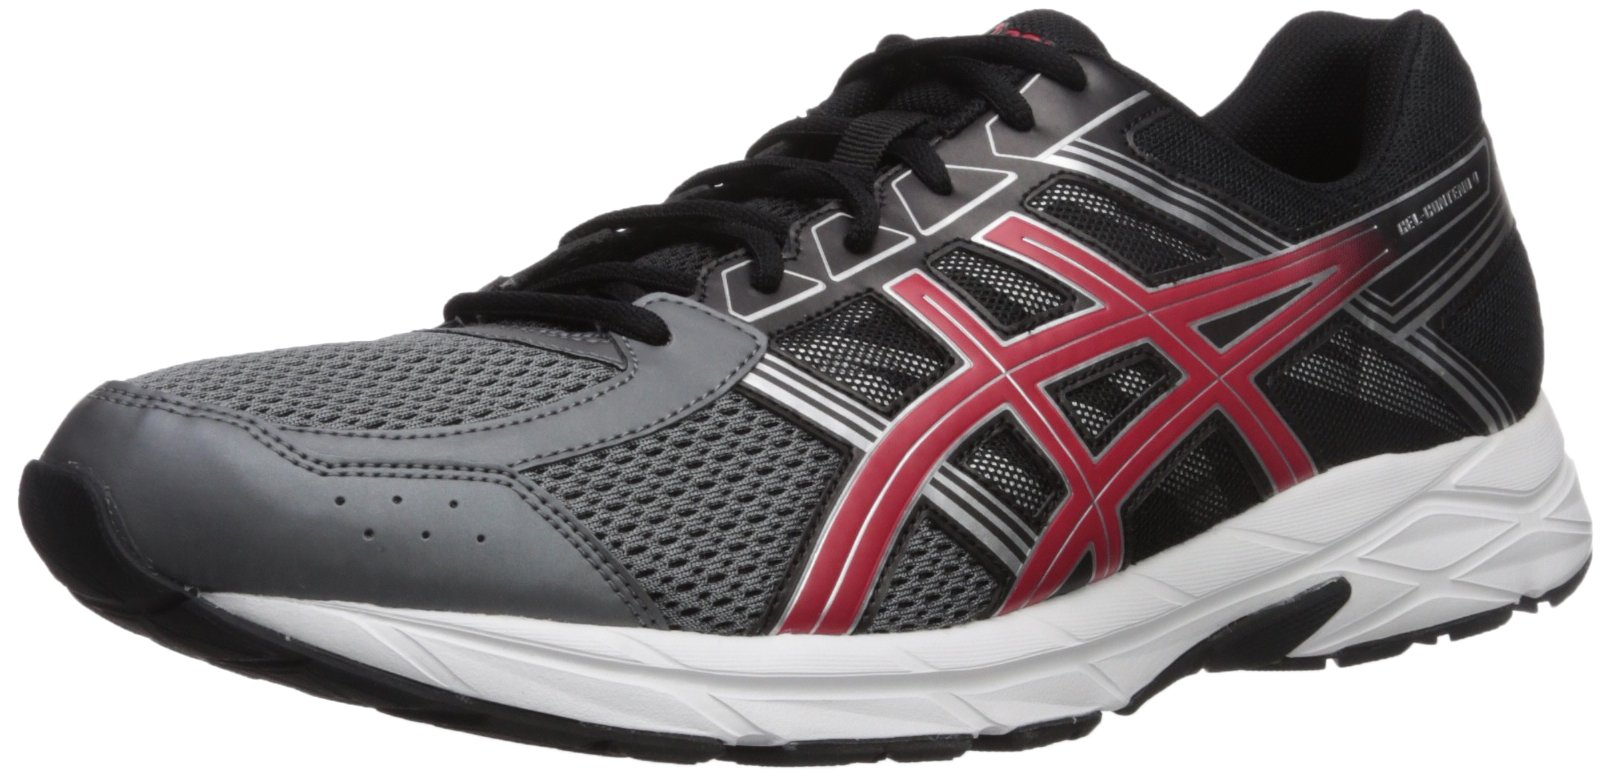 ASICS Men's Gel-Contend 4 Running Shoe, Carbon/Classic Red/Black, 10.5 Medium US